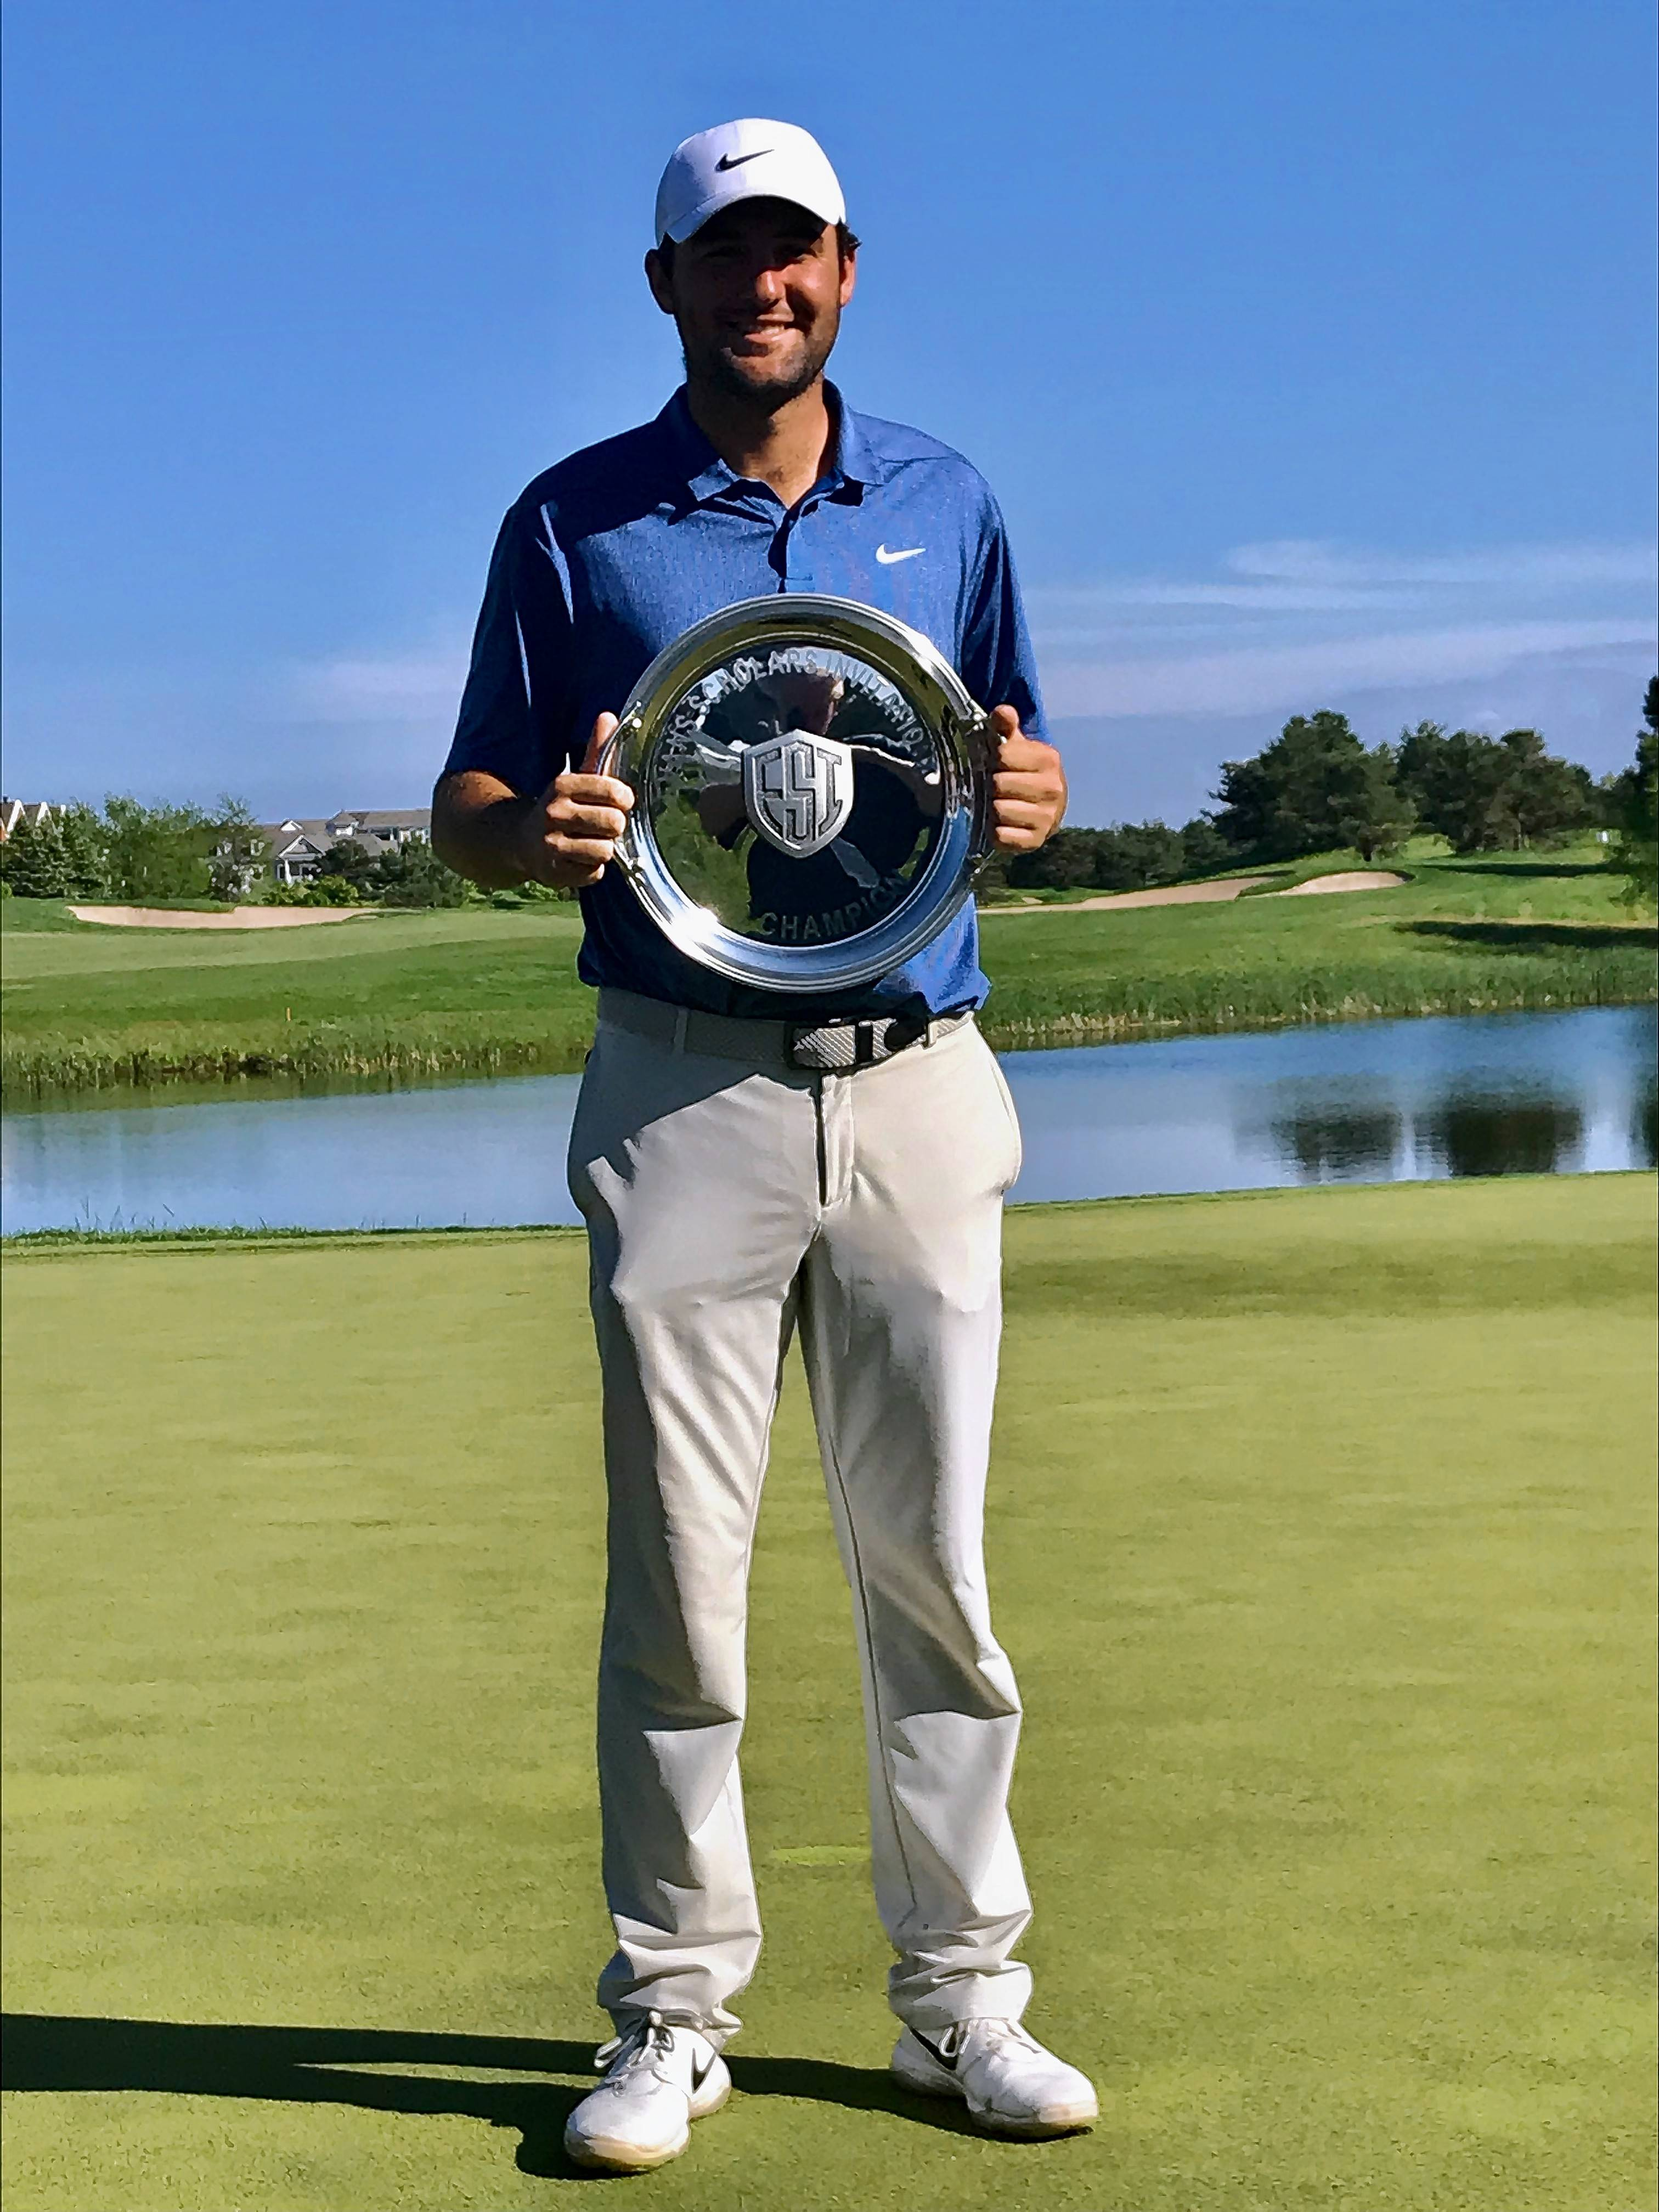 Scottie Scheffler II poses with the trophy after winning the Web.com Tour's Evans Scholar Invitational on Sunday at The Glen Club.